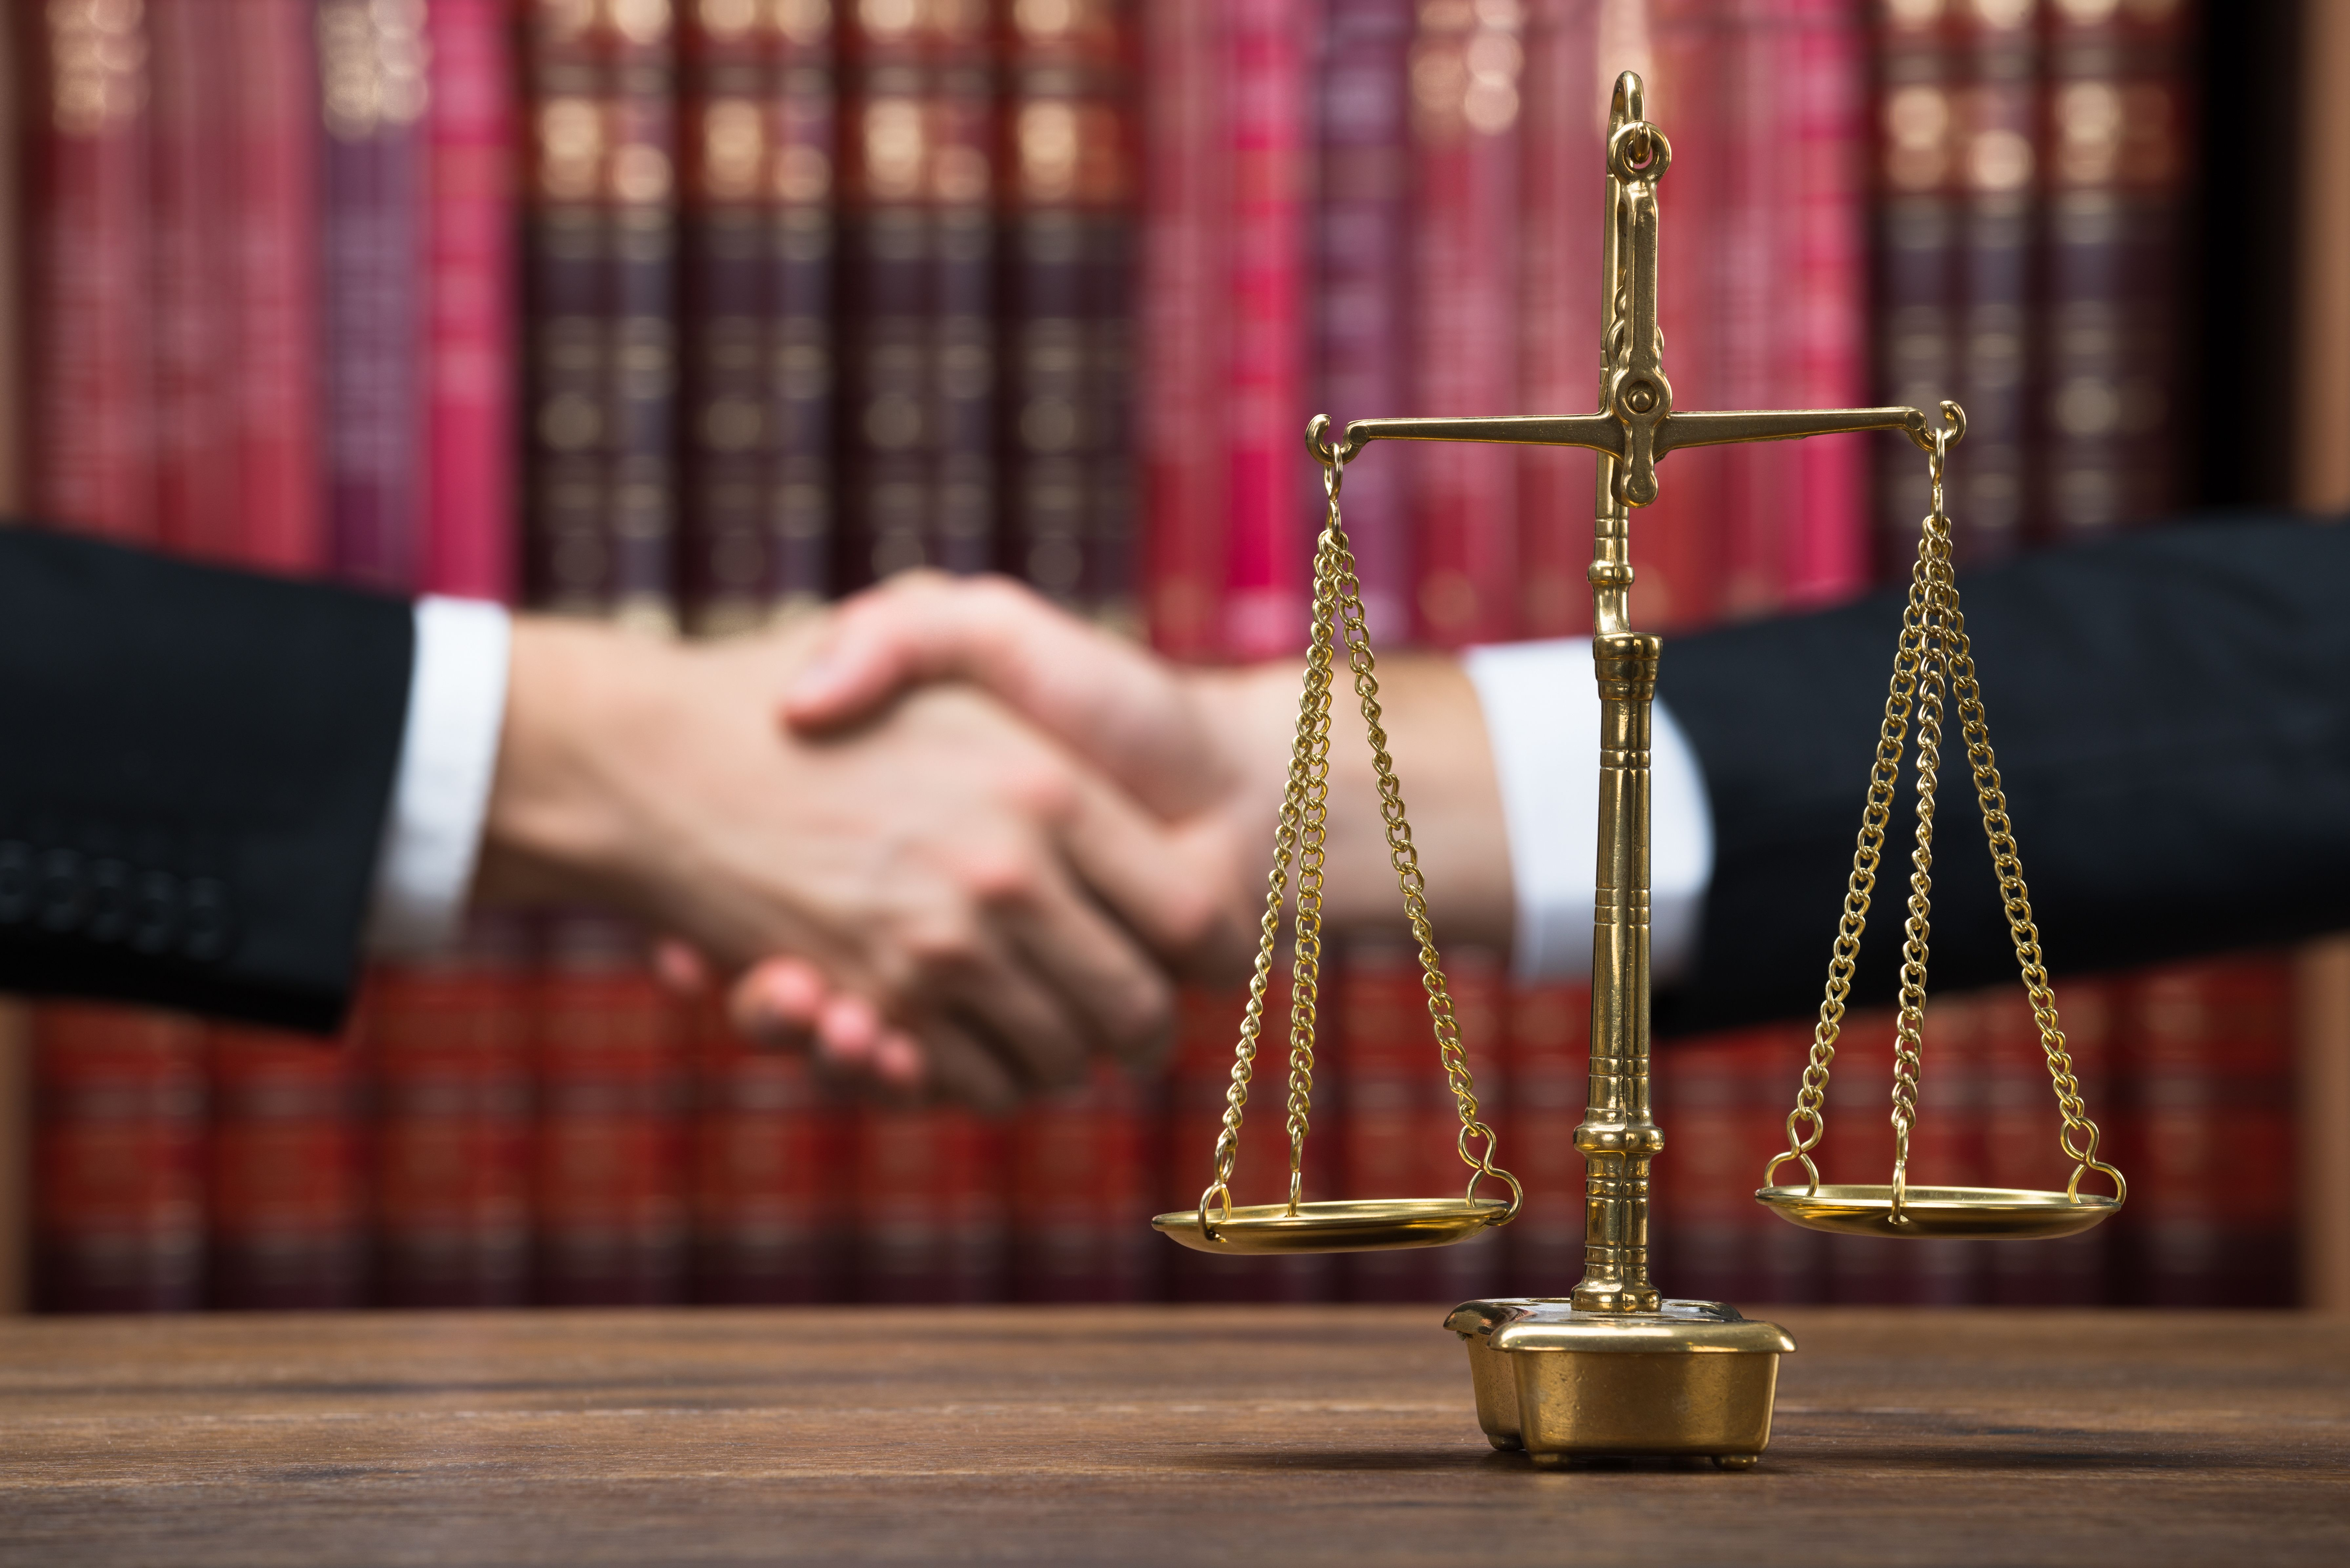 Pin by RNN LAW MD on start a business in MD Divorce